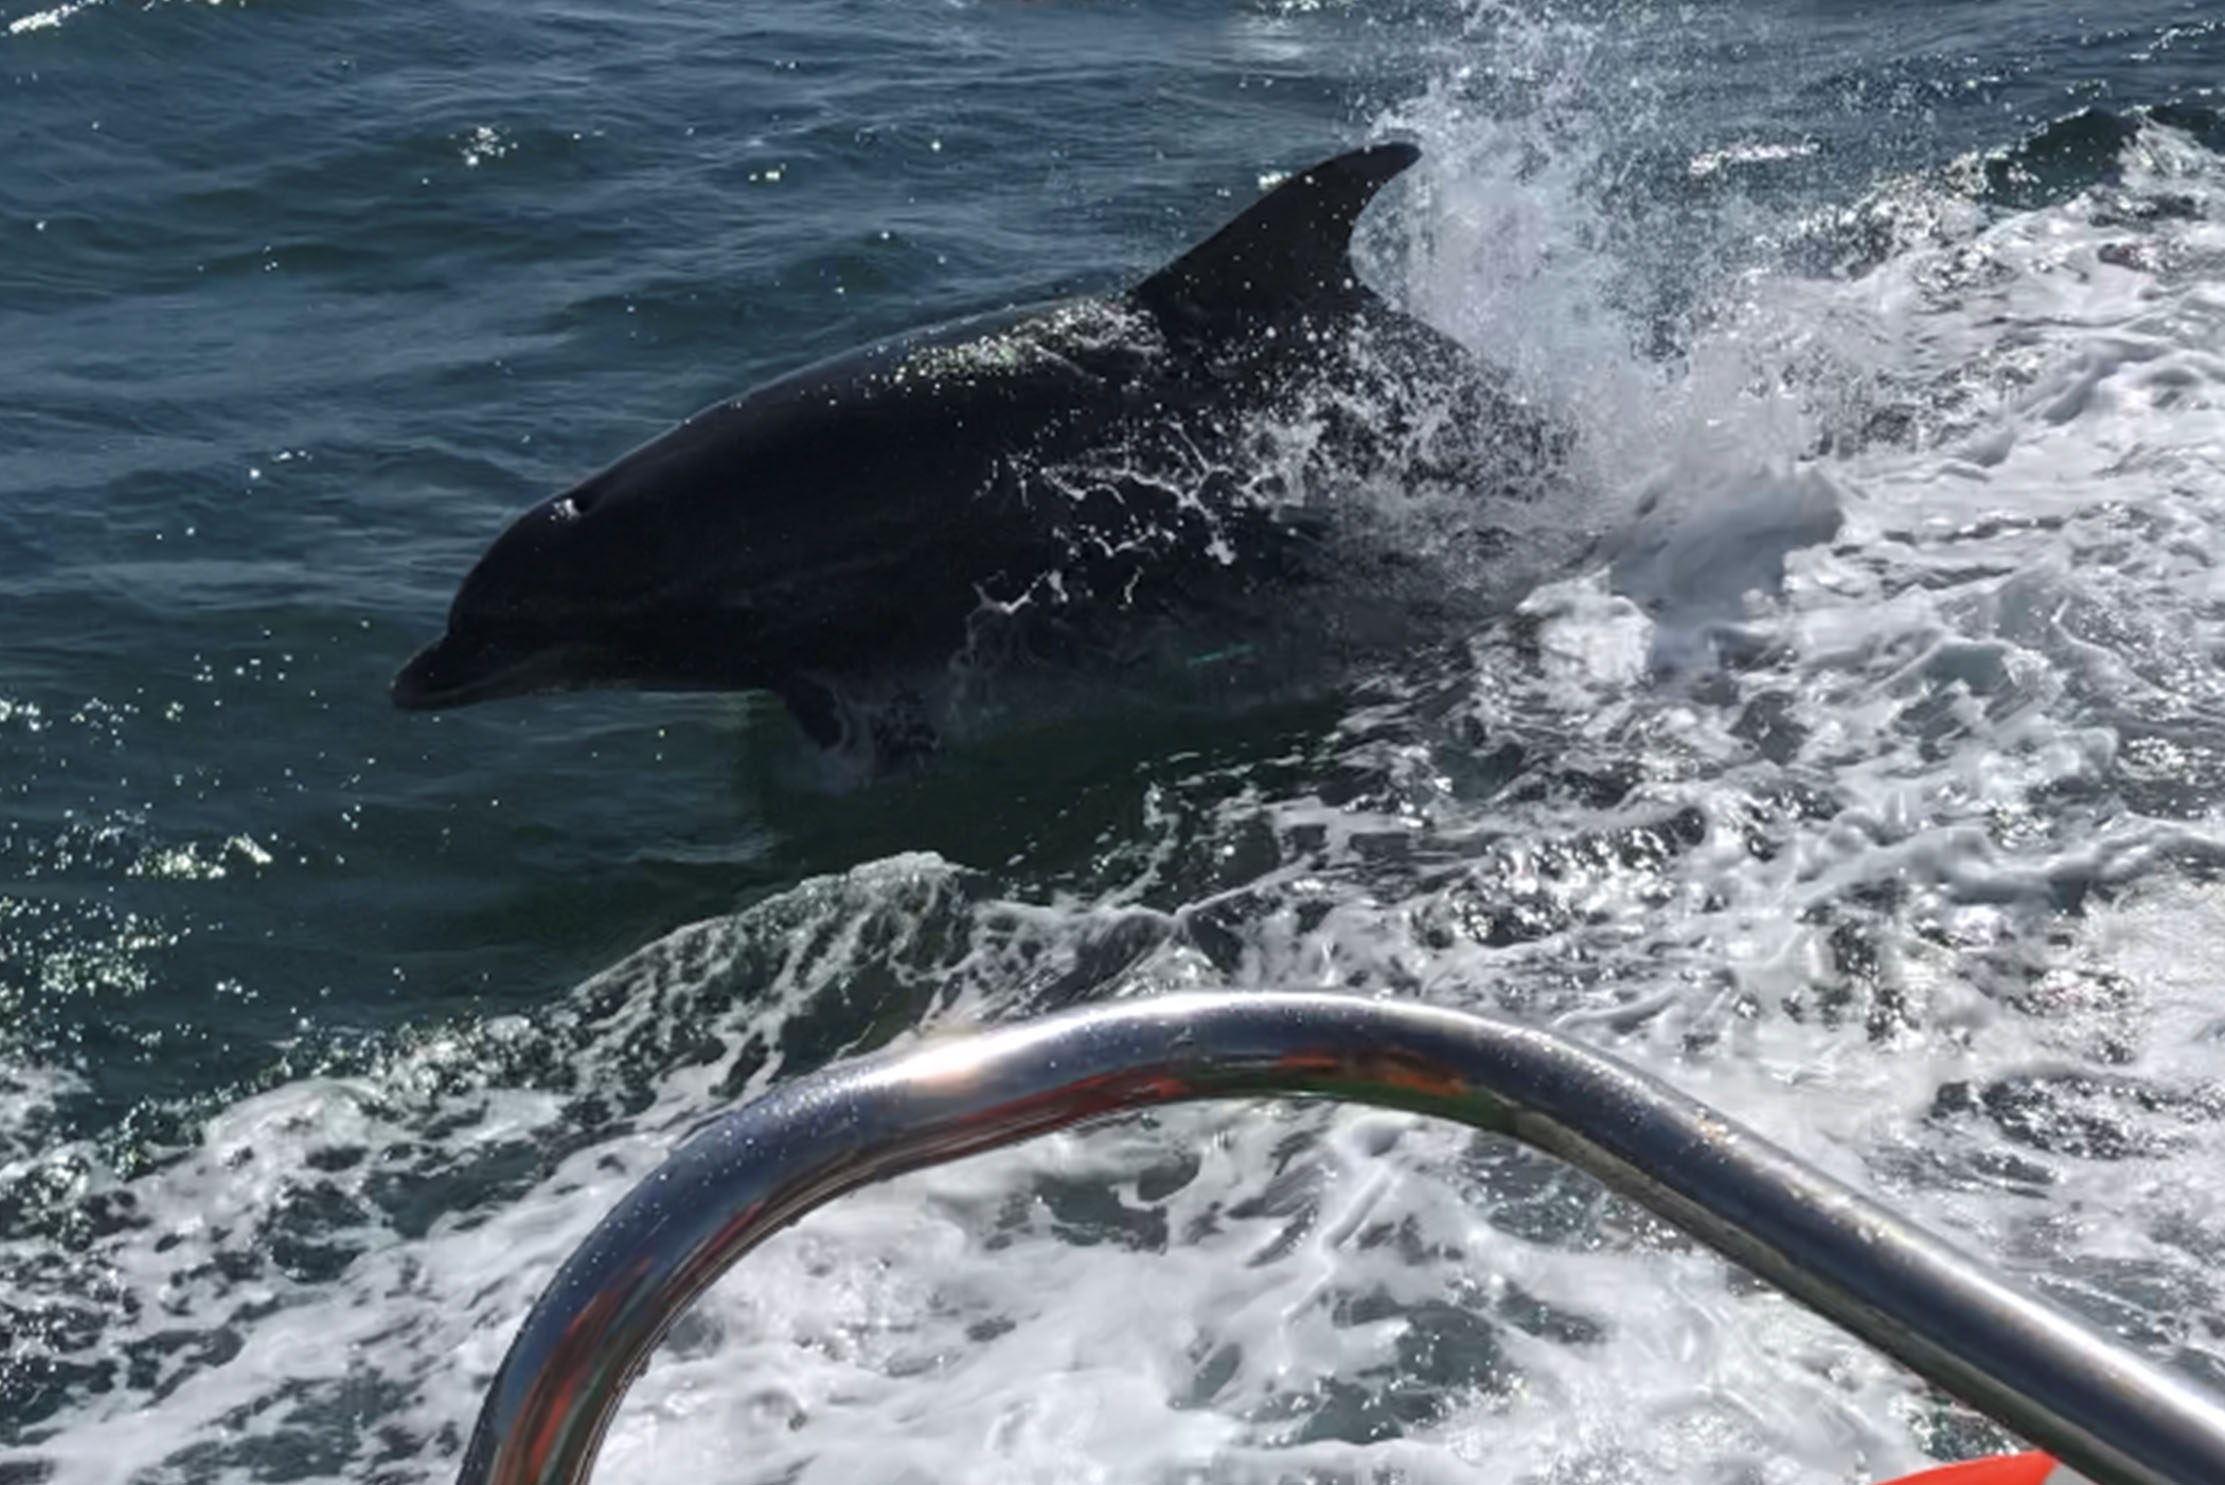 Brighton Dolphin Project and Shoreham Port are teaming up so we can better understand marine life off the Sussex coast